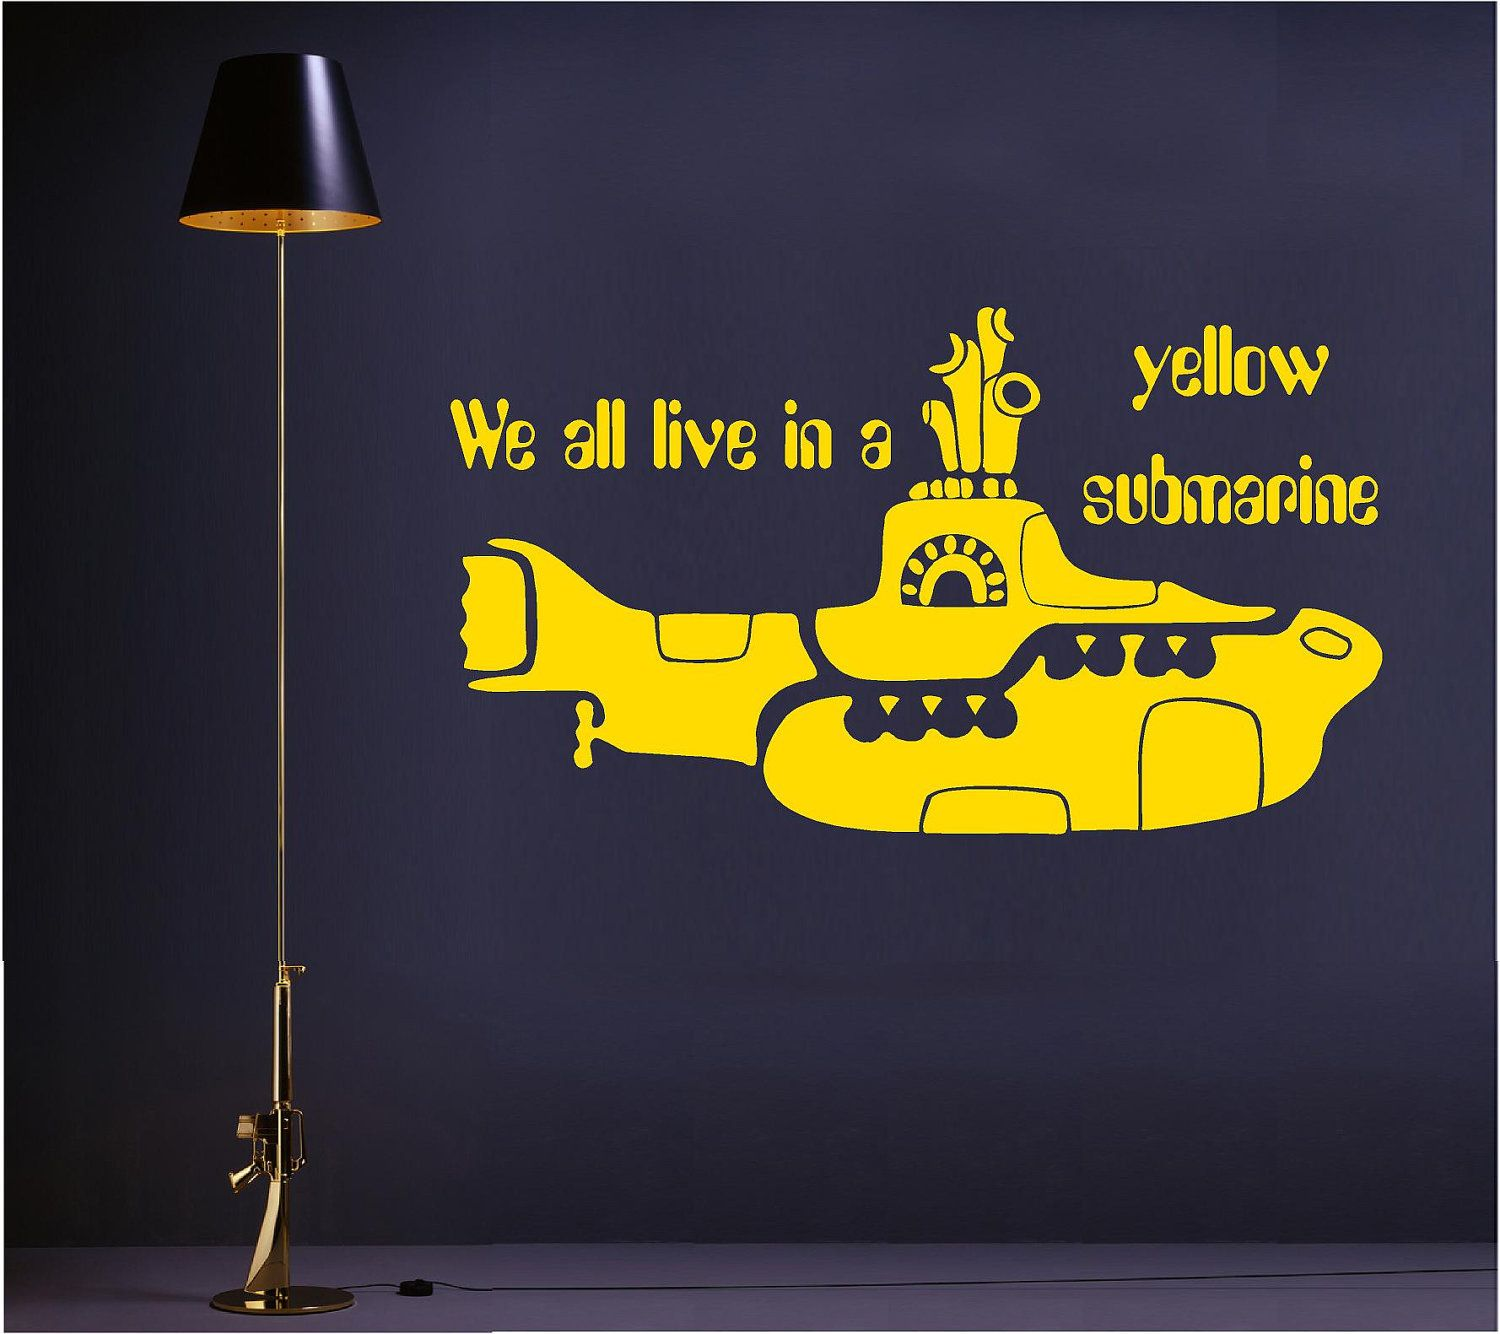 We all live in a yellow submarine ver vinyl wall art decal